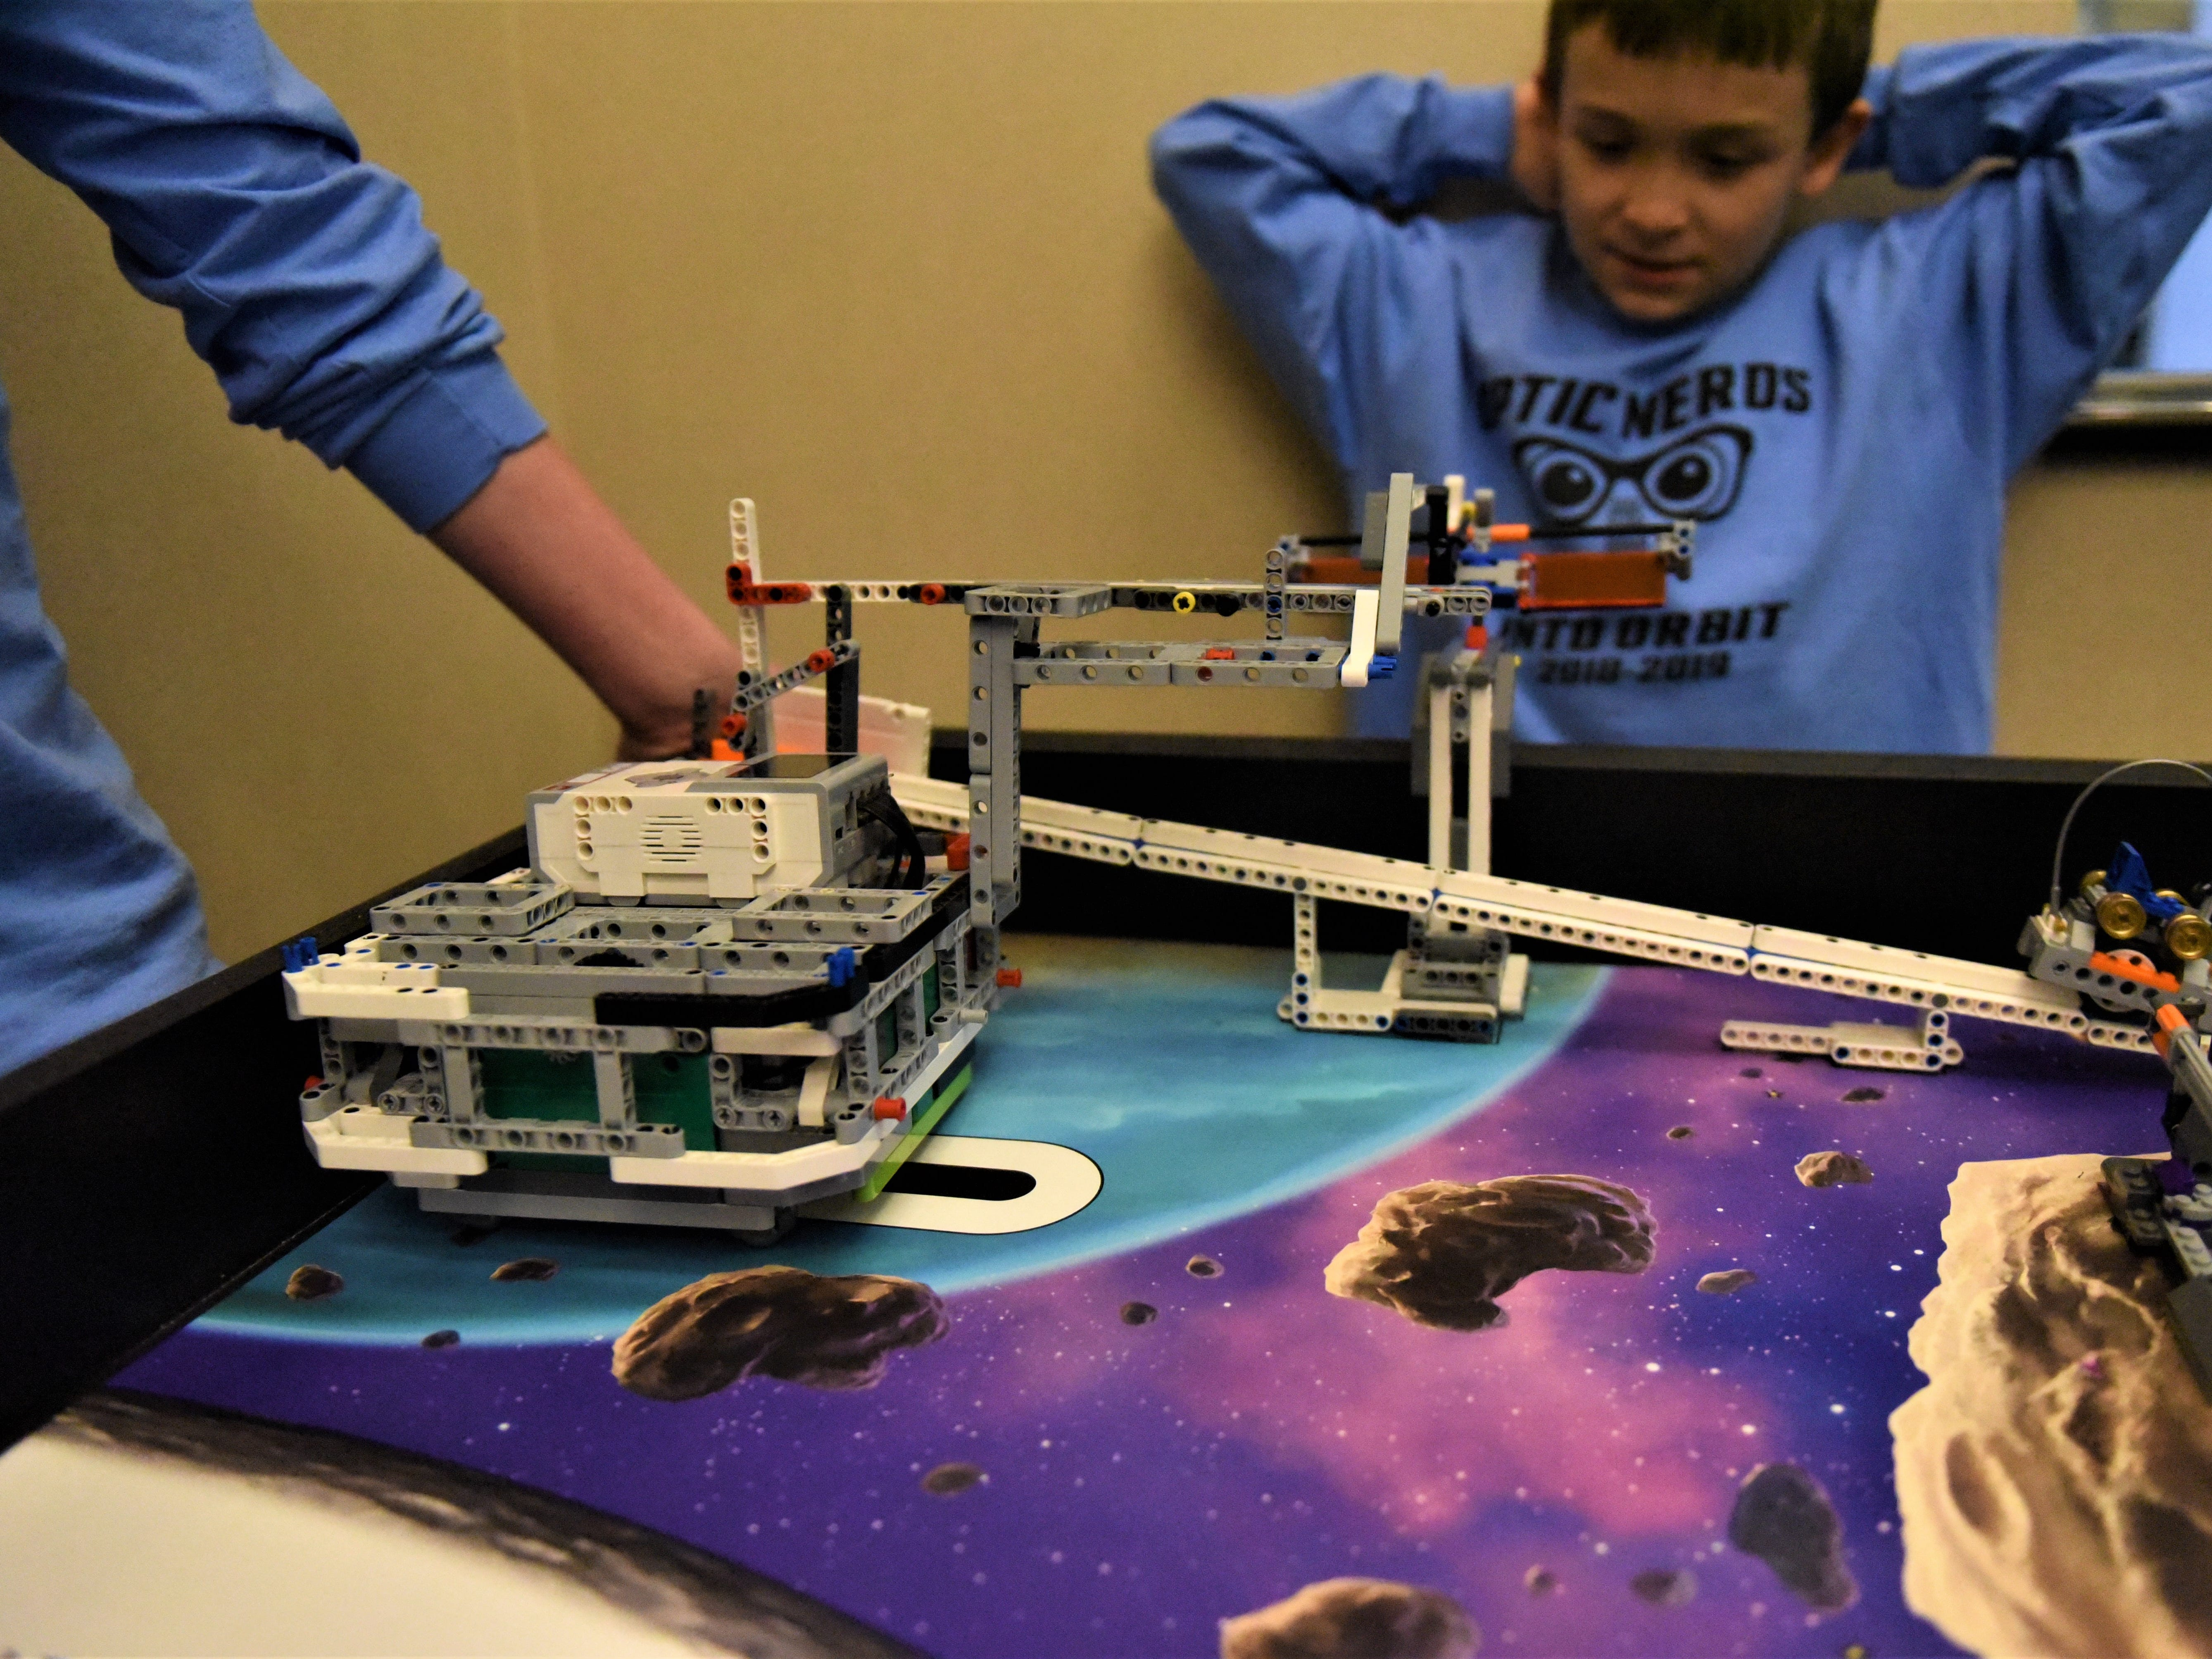 Harrison Roth, 9, watches as the robot completes a task. The Optic Nerds team name is a play on words, stemming from optic nerves. The theme of the robotics competition is Into Orbit, and astronauts often develop vision problems in space because their optive nerves swell andwarp.